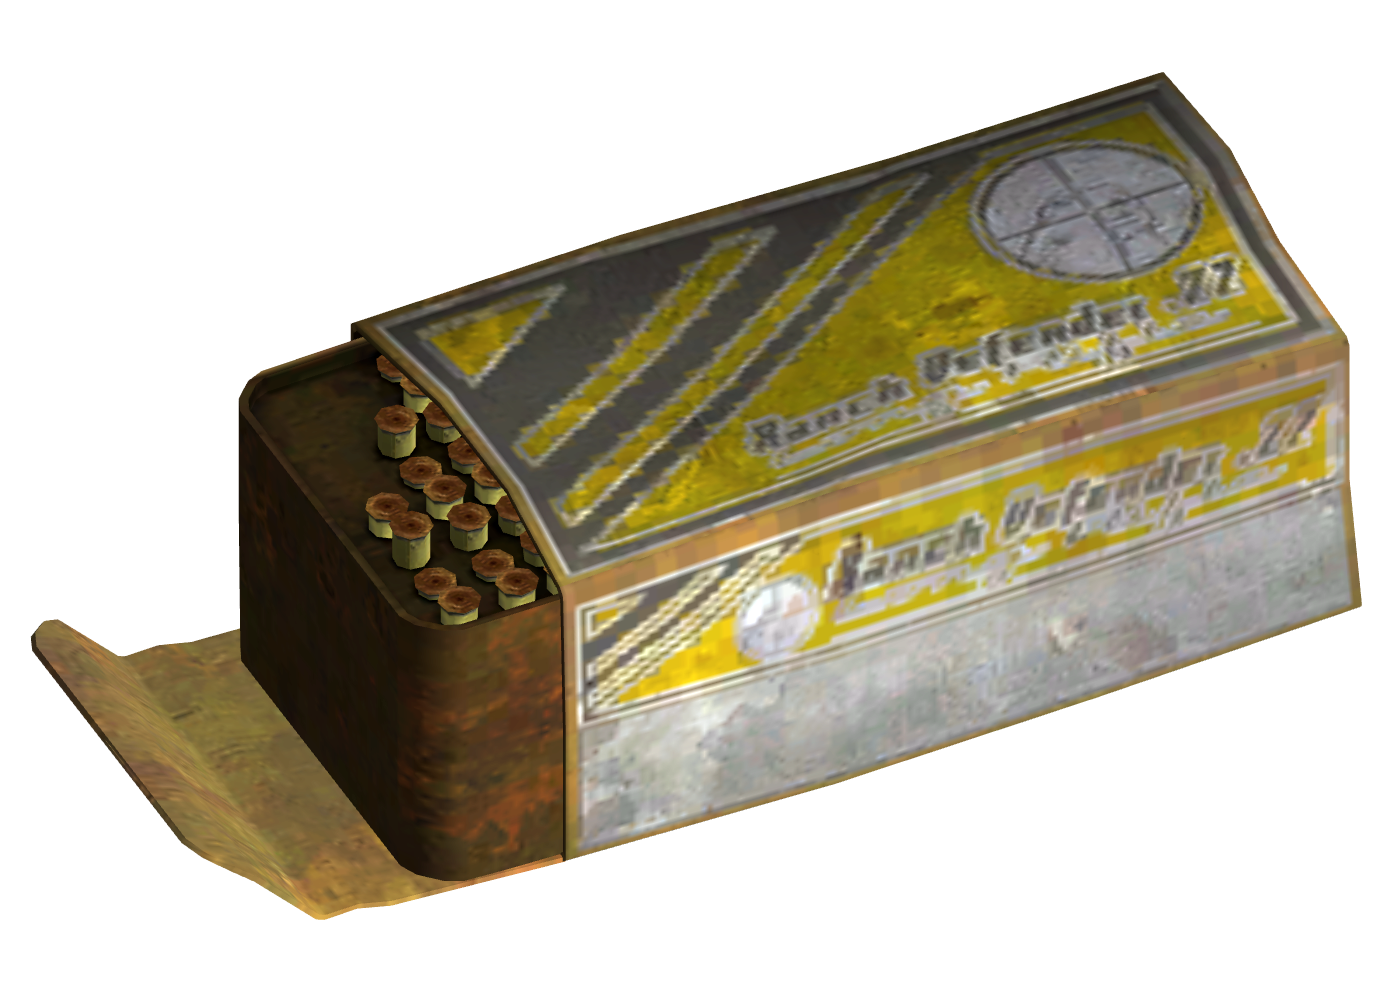 latest?cb=20110213173836 fallout new vegas ammunition fallout wiki fandom powered by wikia fallout 4 fuse box lid at crackthecode.co